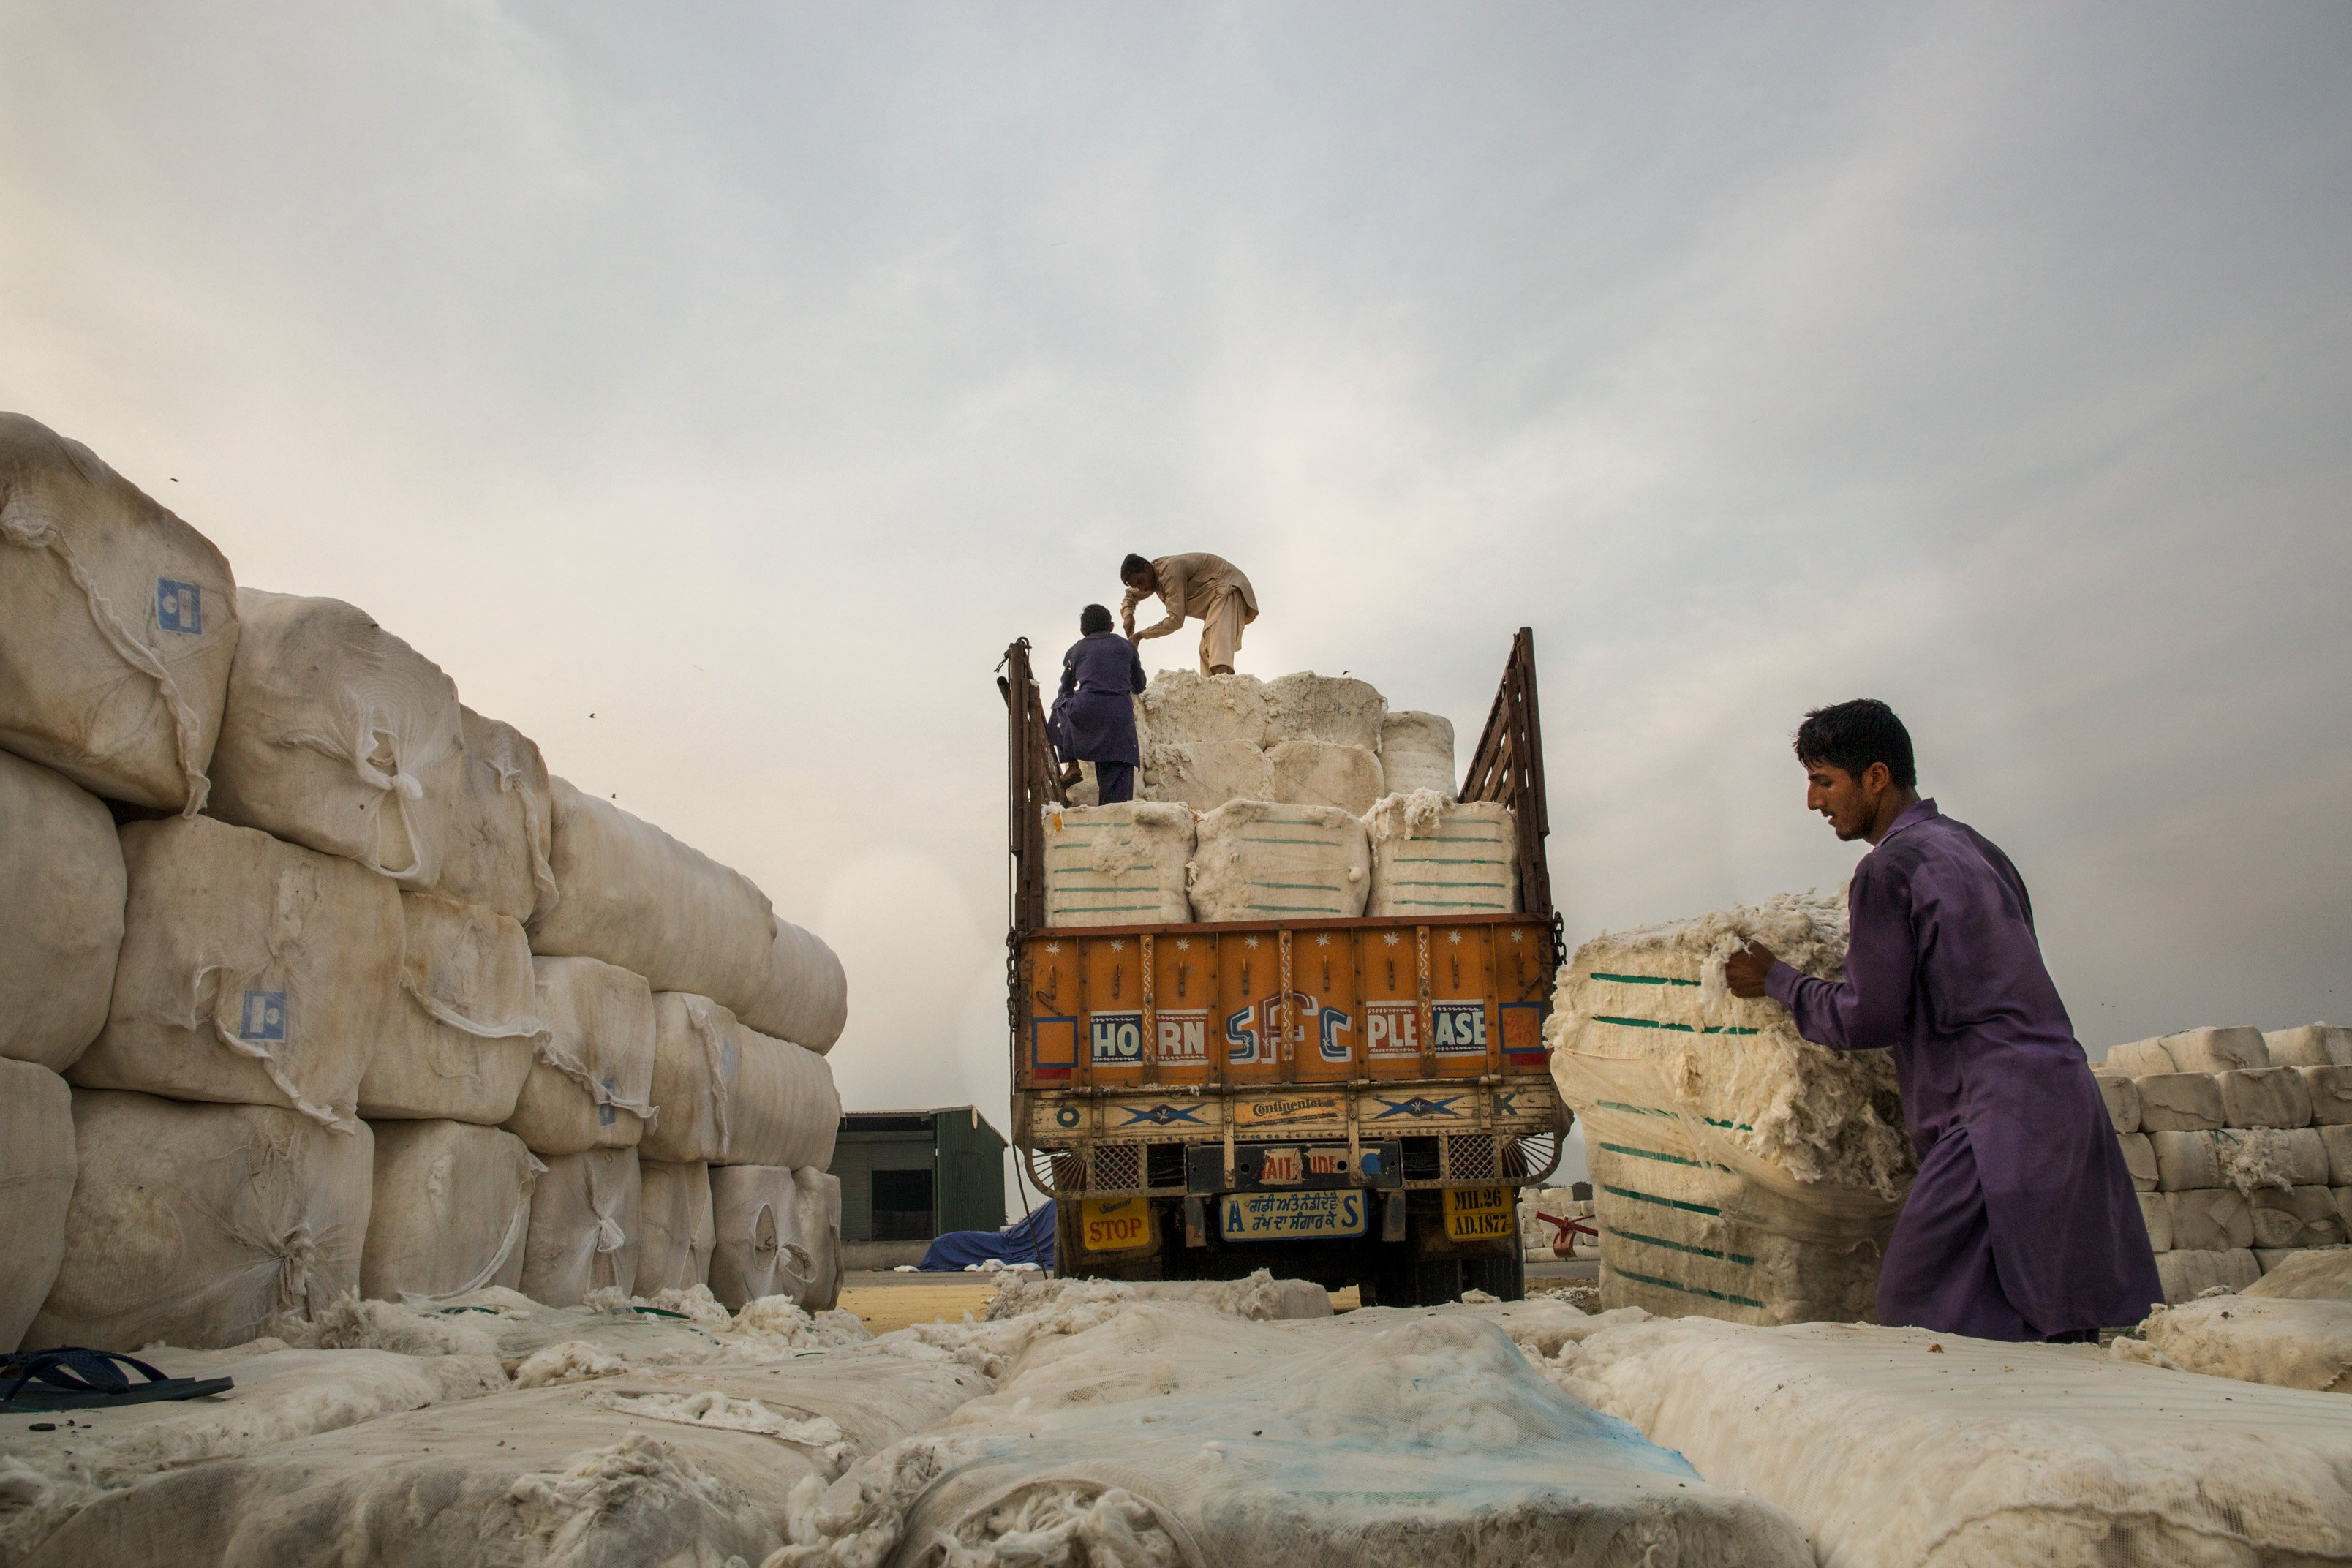 An Indian truck carrying cotton bales is being offloaded by the Pakistani workers at the Wagah-Attari Cargo Terminal